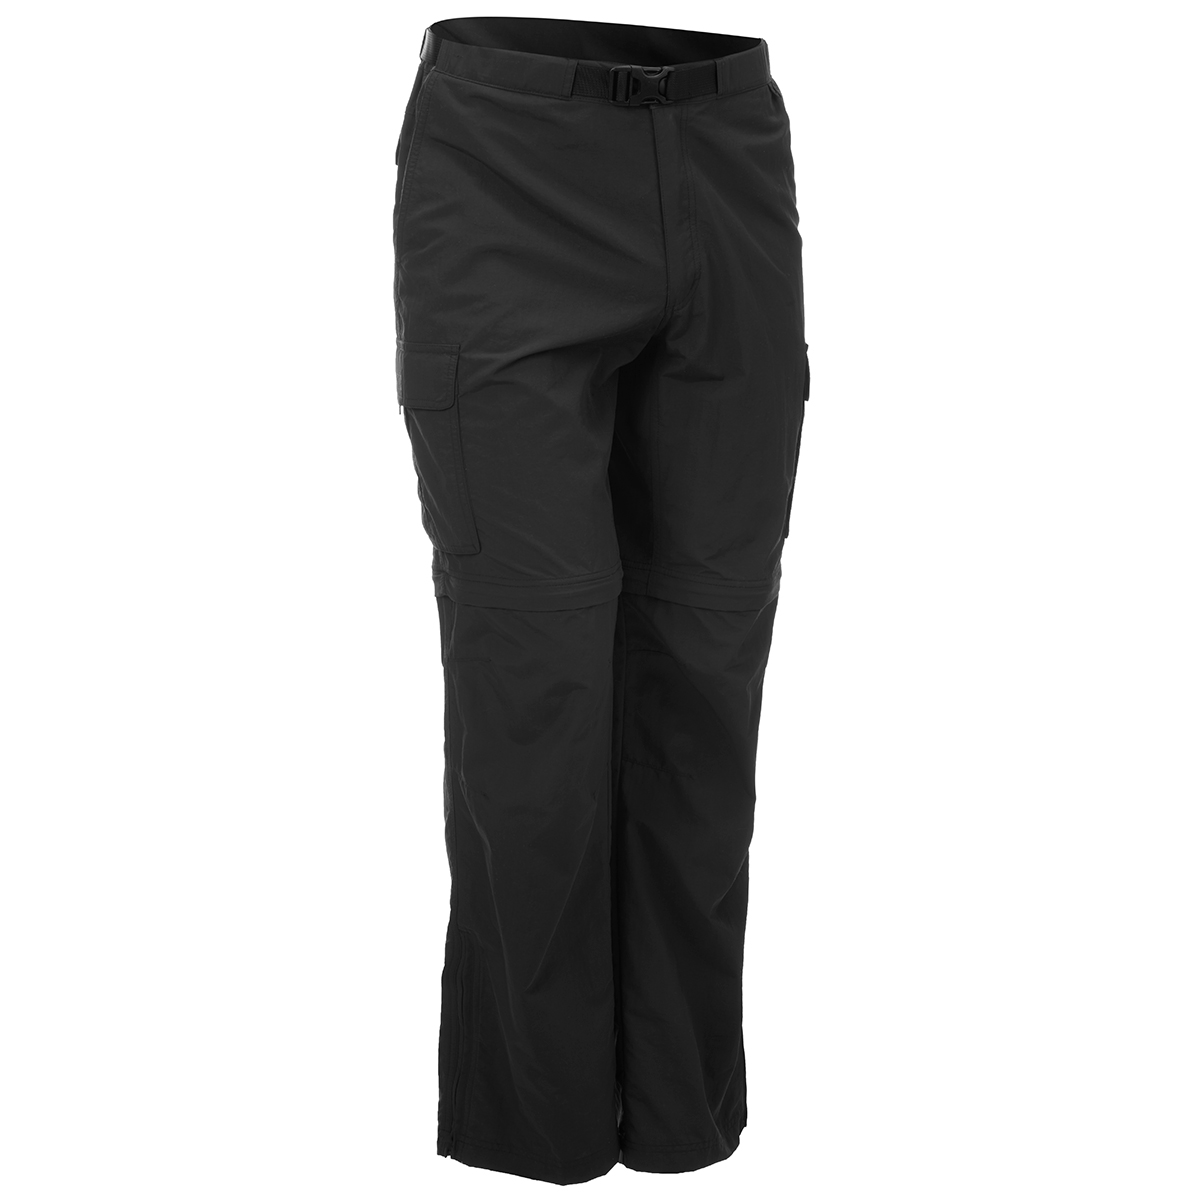 Ems Men's Camp Cargo Zip-Off Pants - Black, 33/32